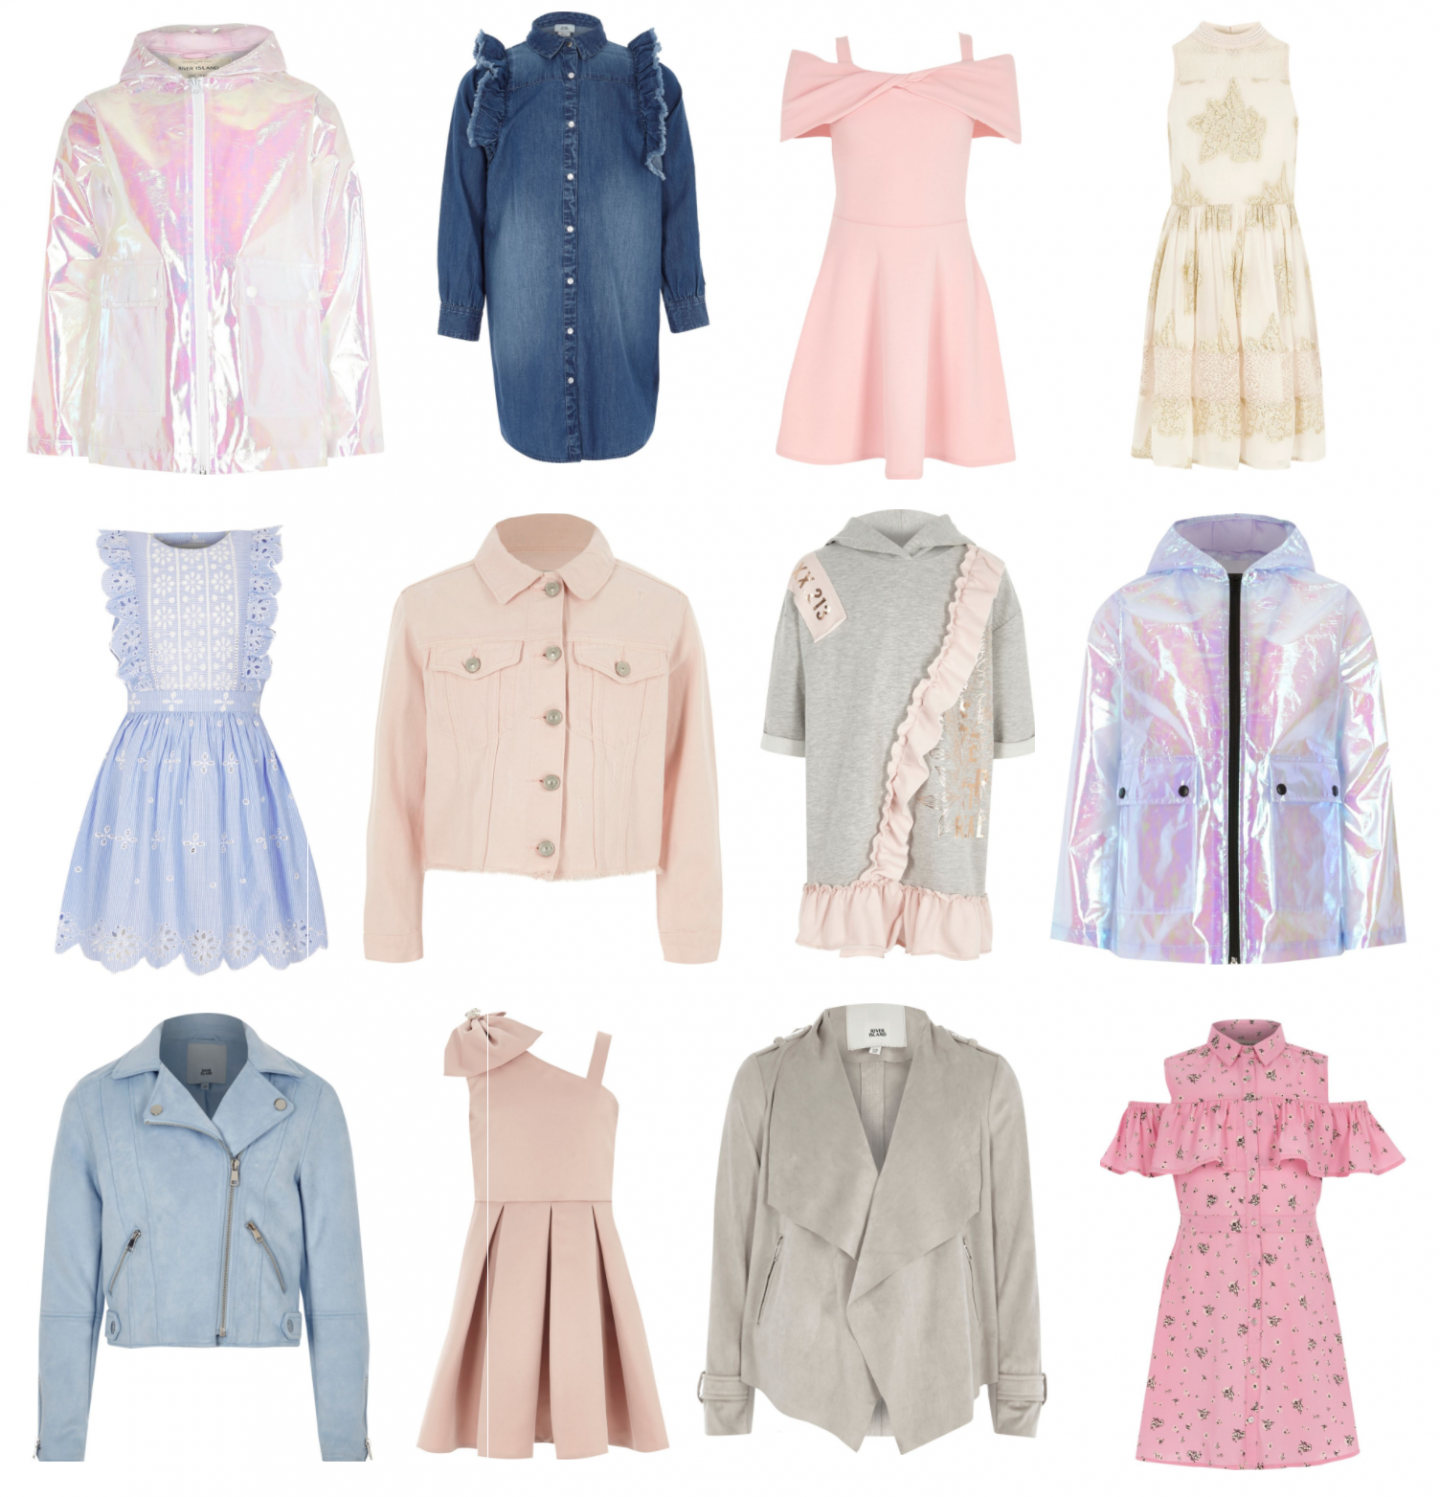 River Island | Adorable Girl's Coats & Dresses for all Occasions